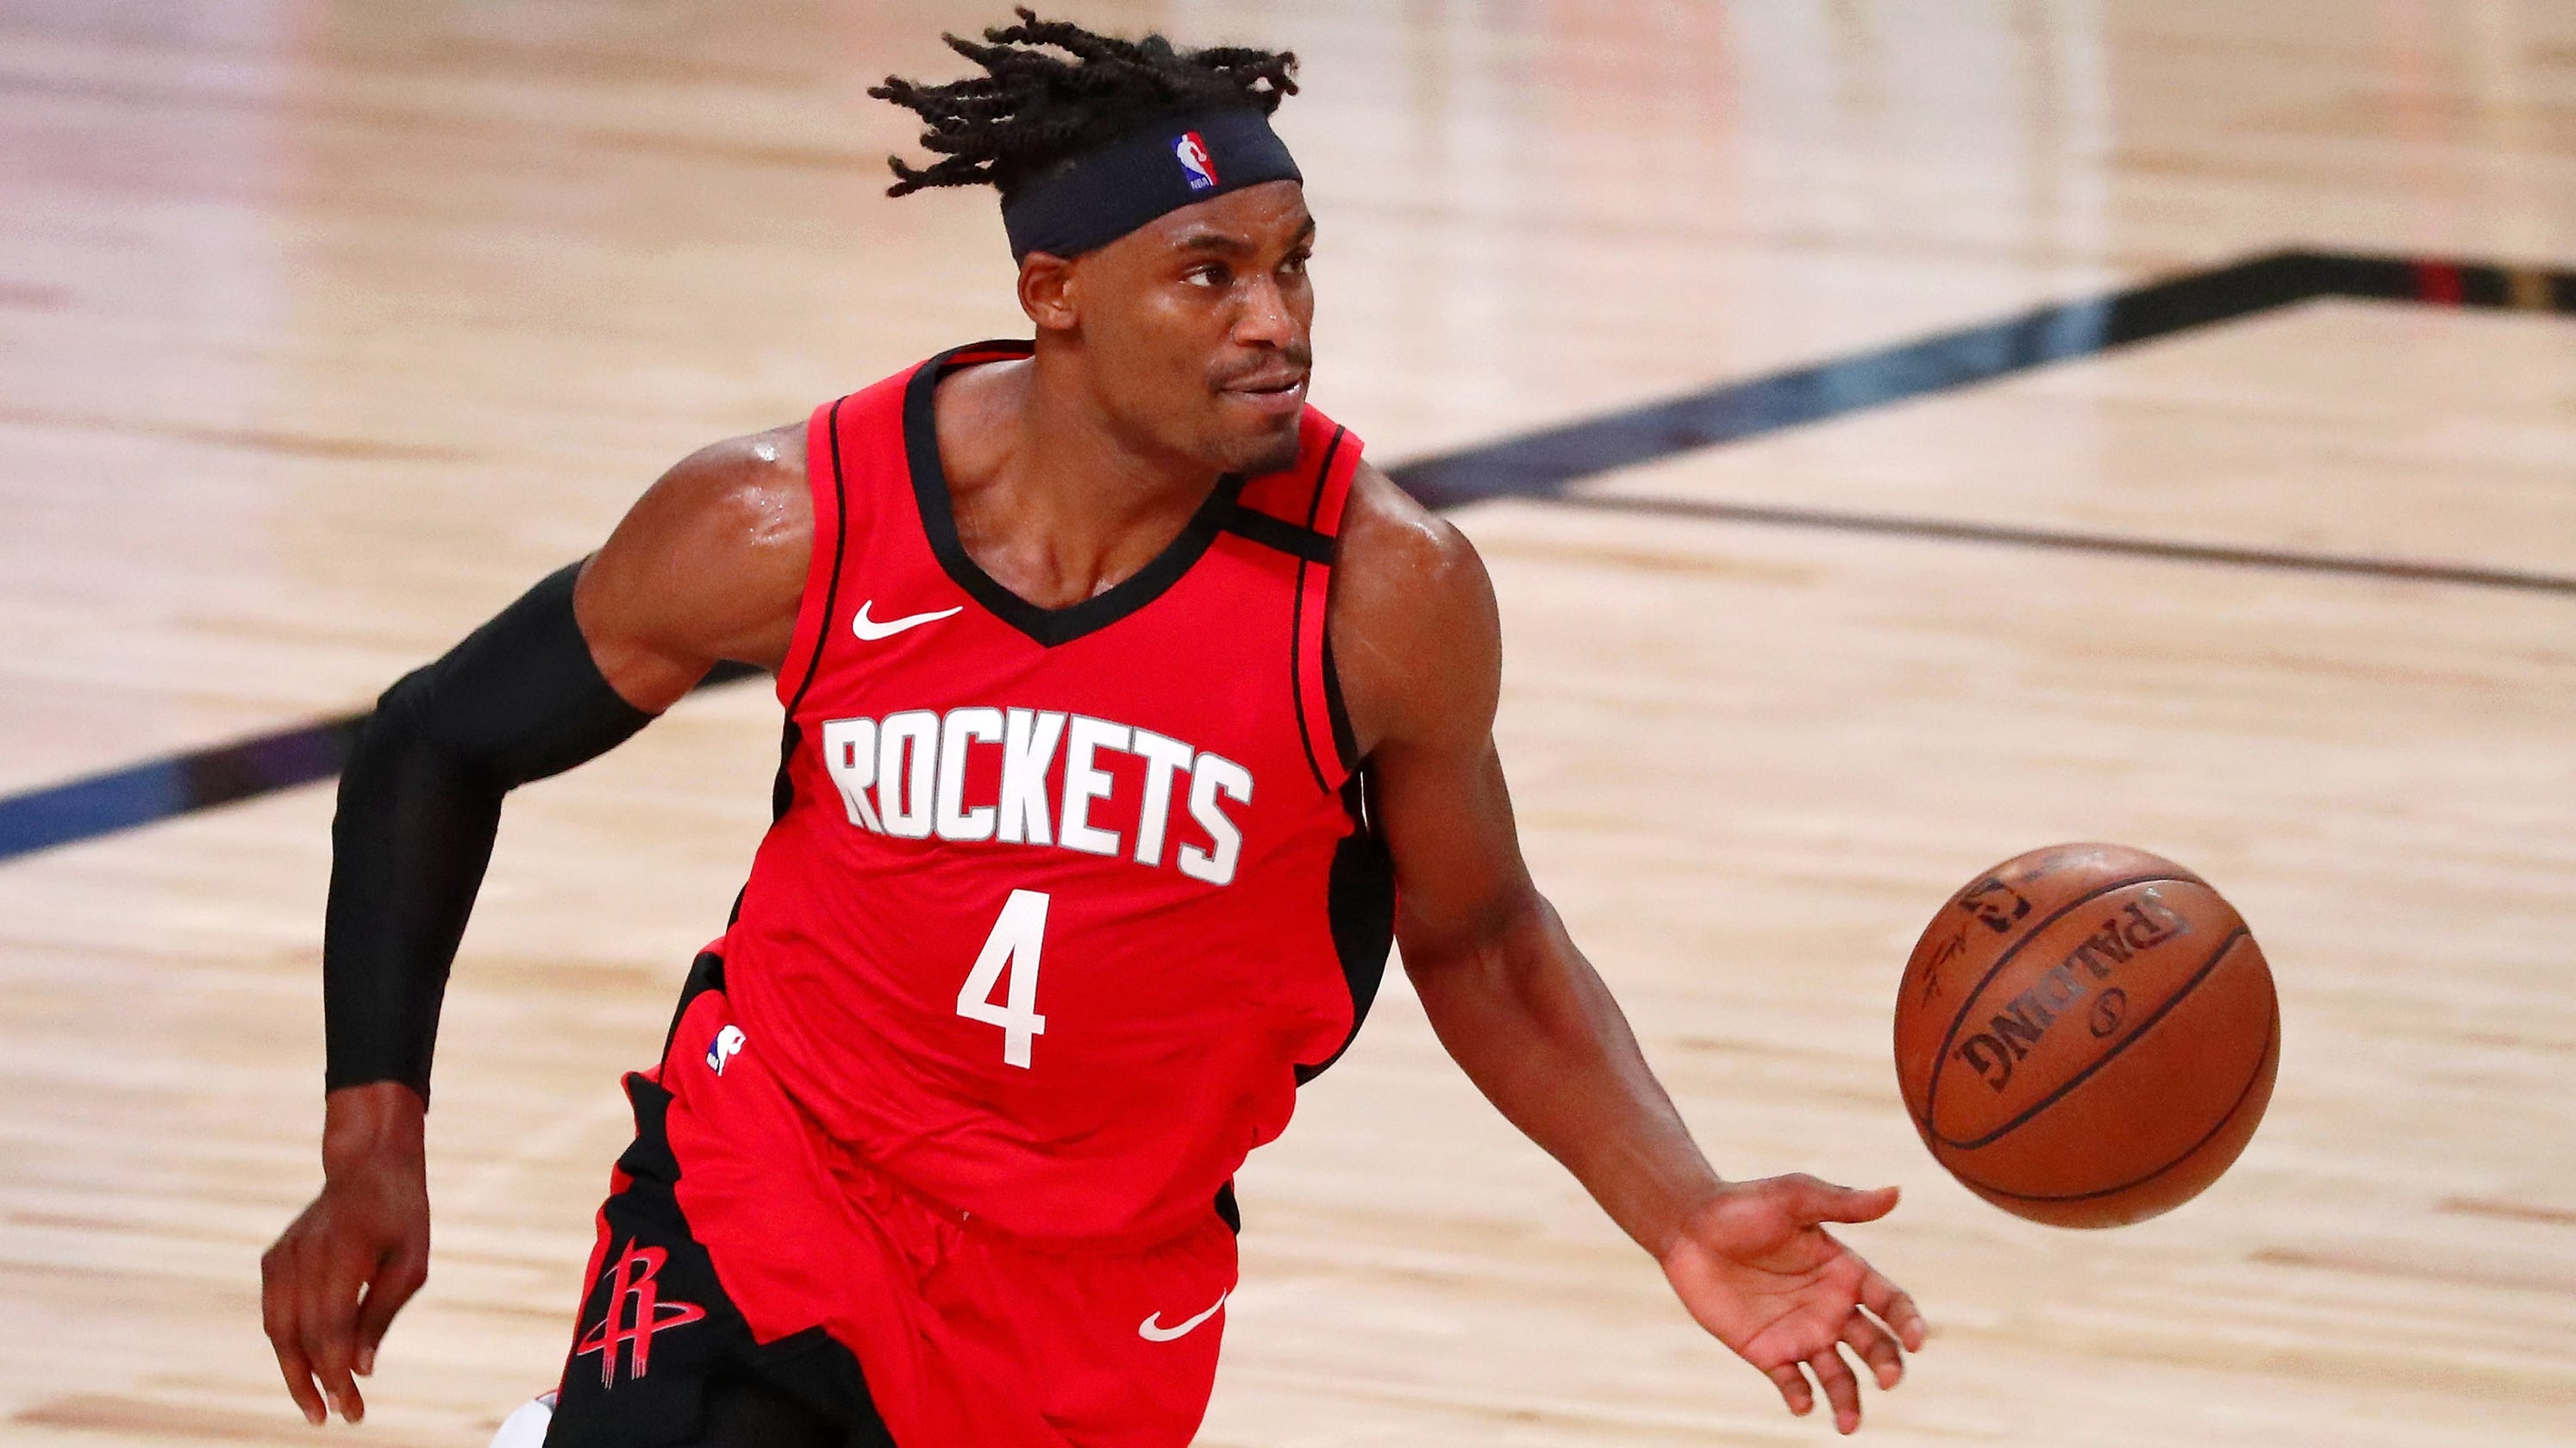 Rockets' Danuel House to miss Game 4; NBA investigating protocol issue